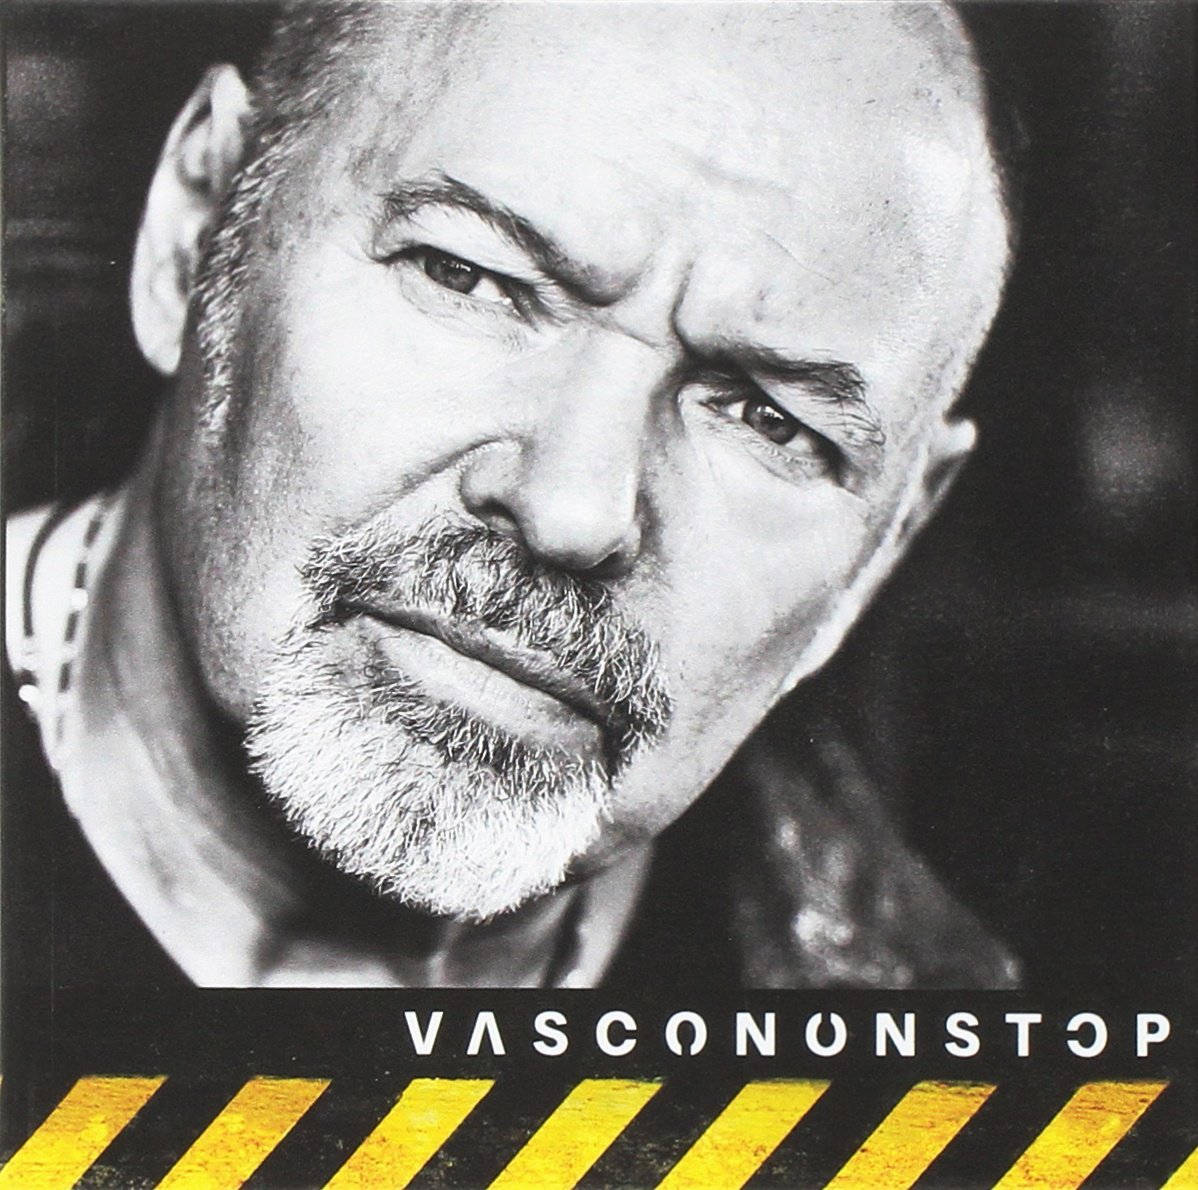 Vasco Occhi Blu Vasco Rossi Discography With Album Single And Compilations En